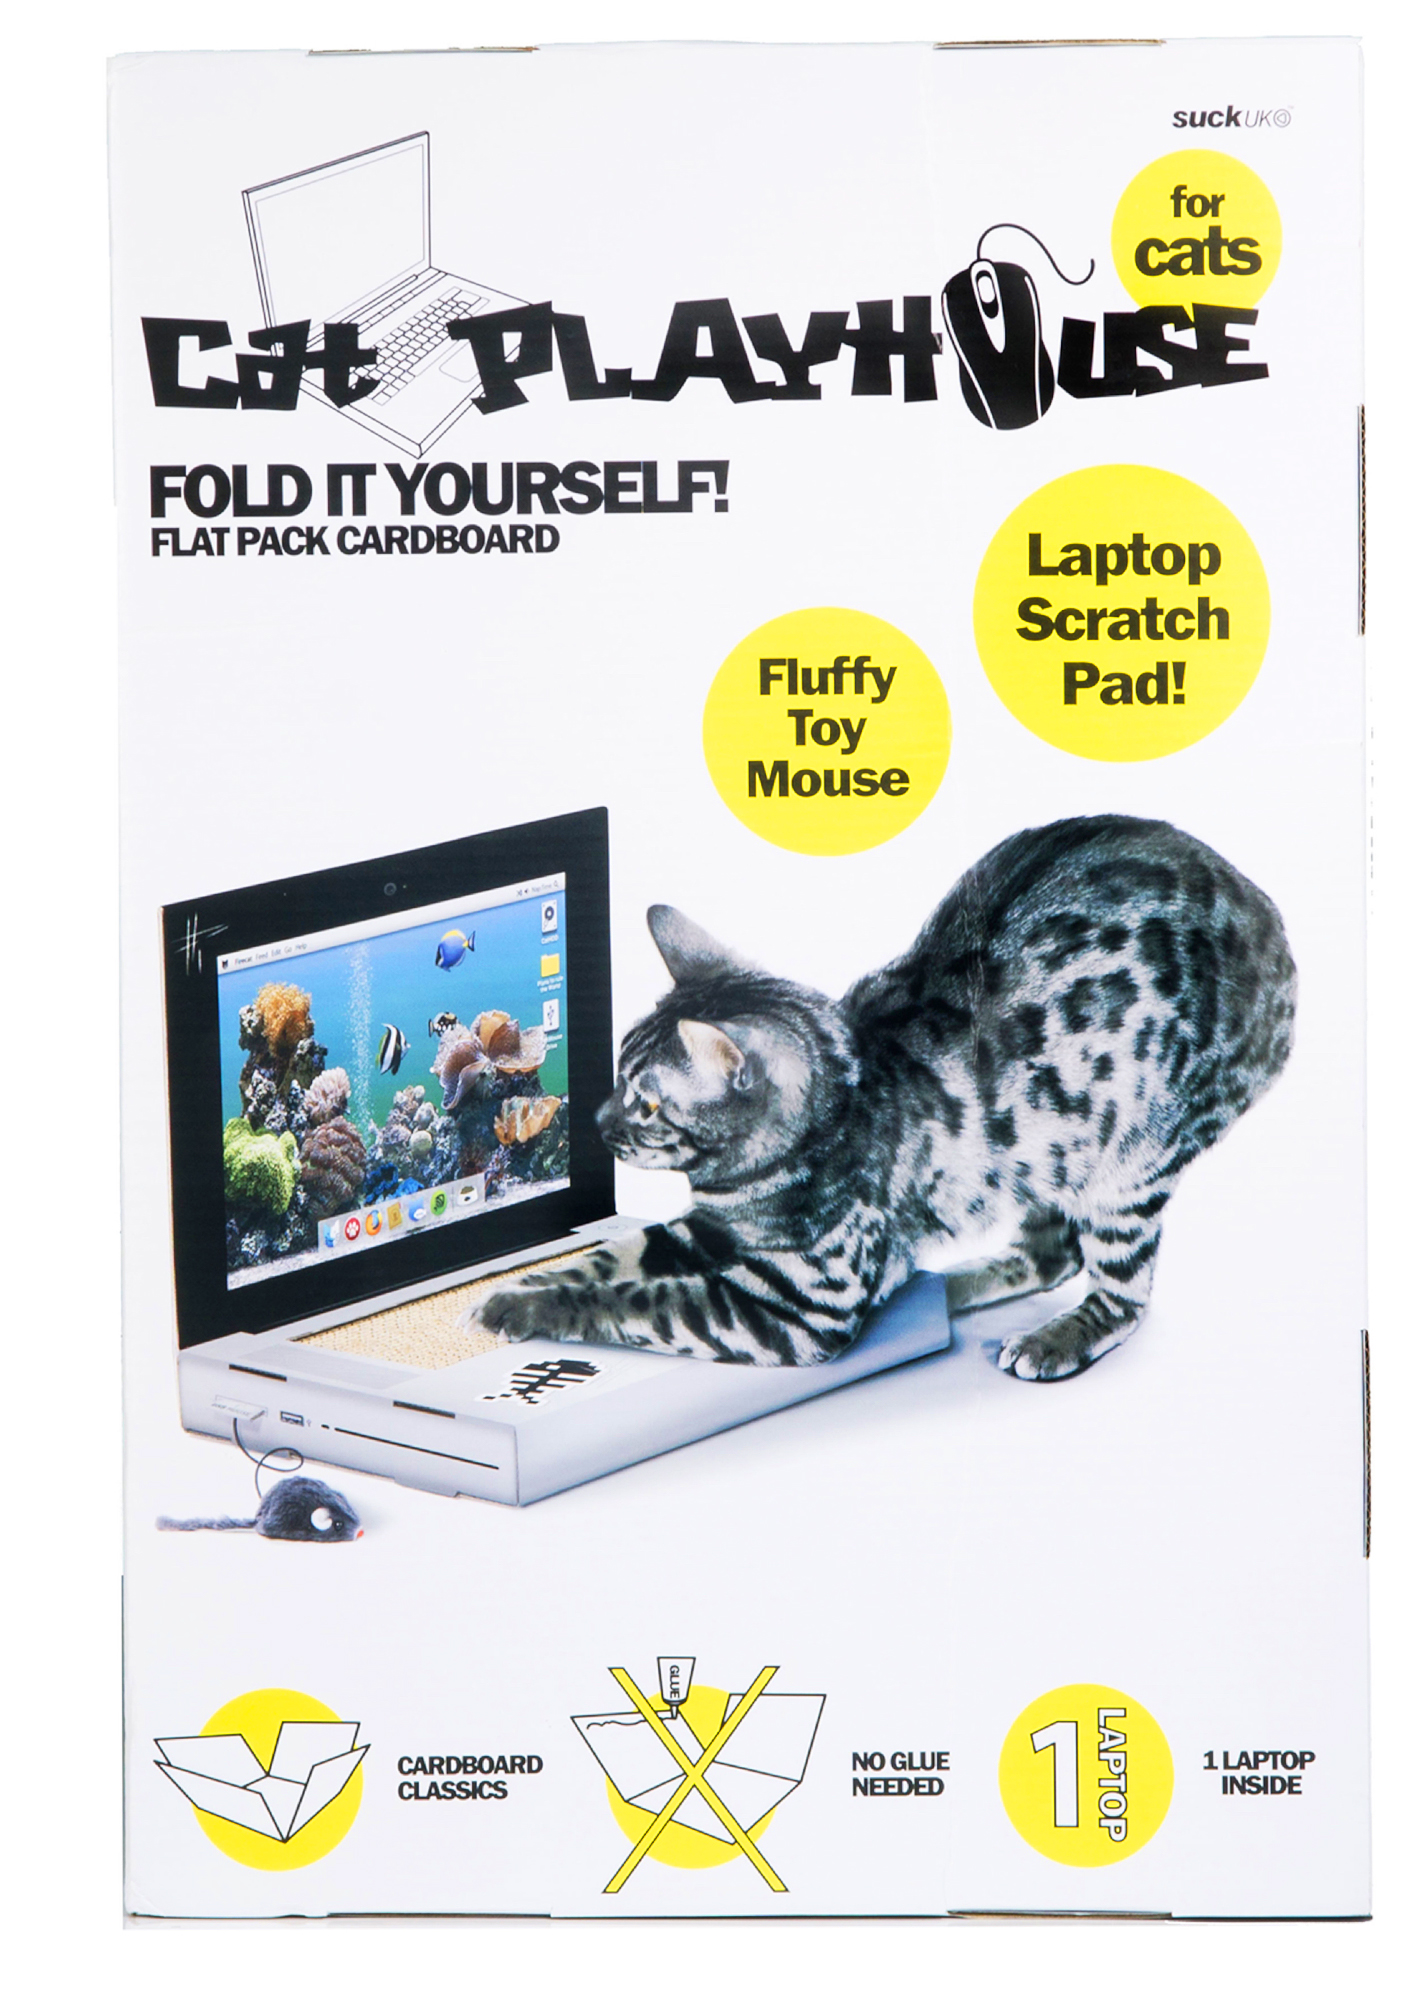 Cat Scratch Laptop